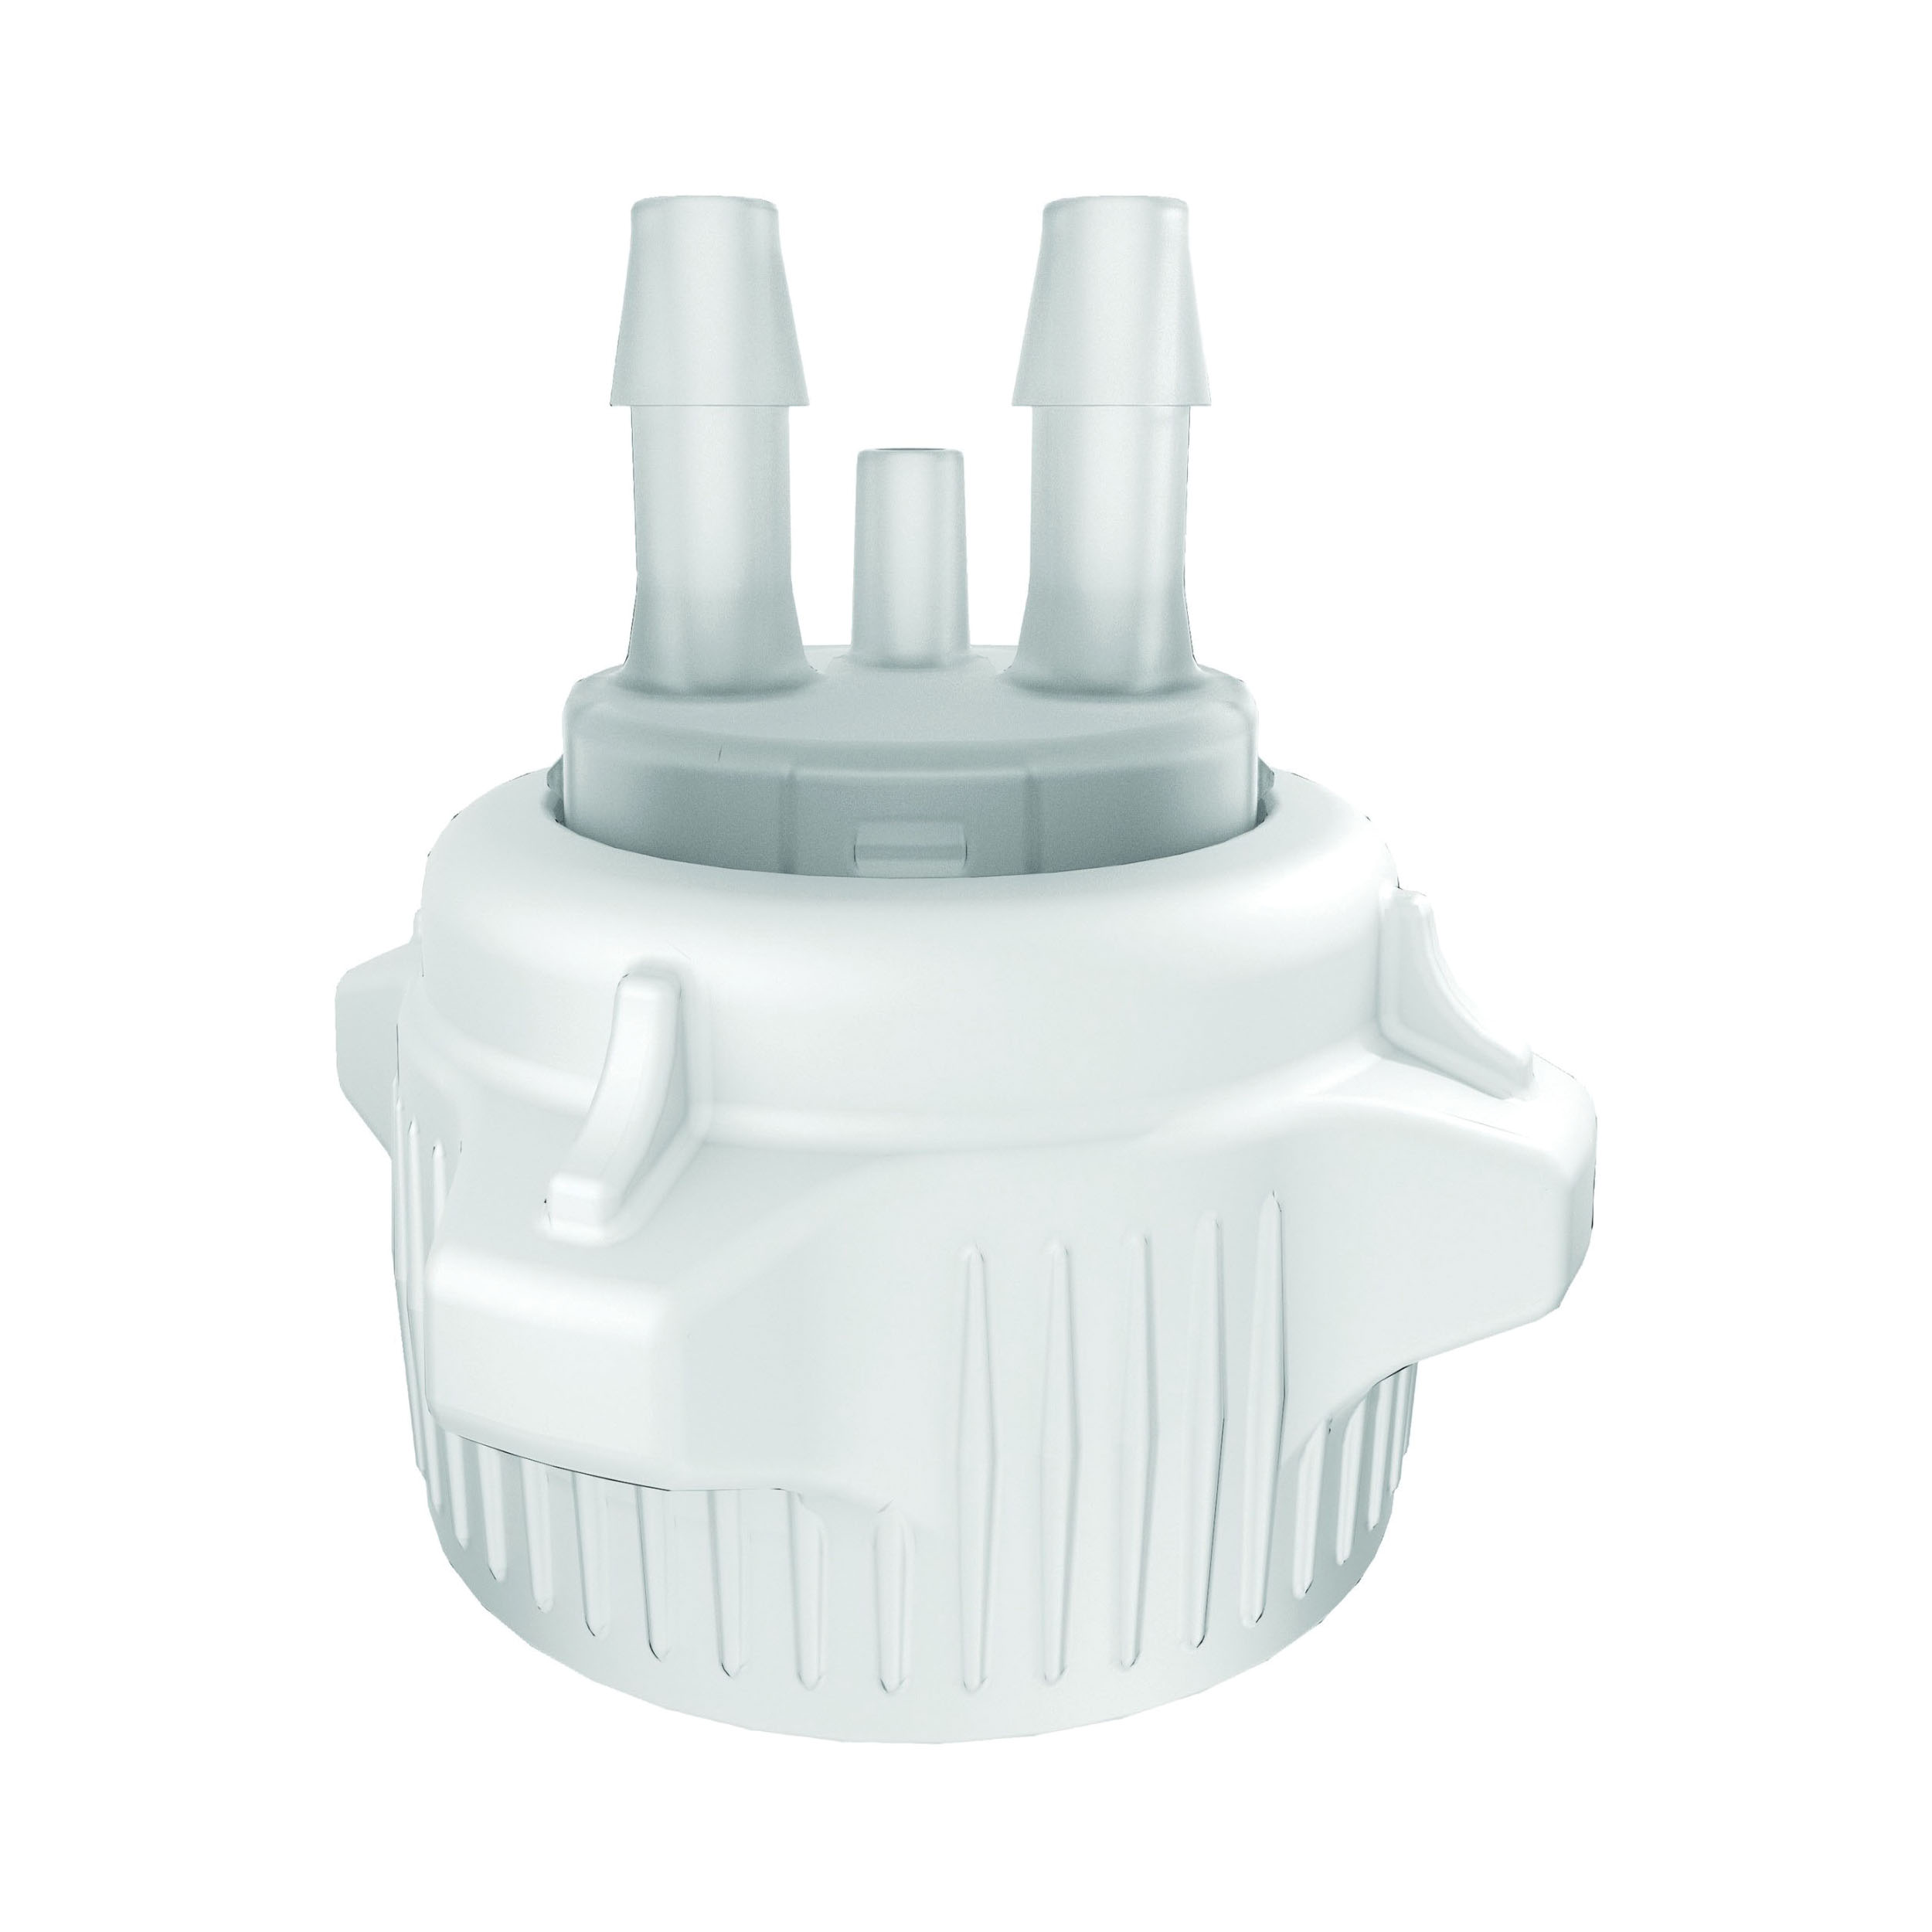 Justrite® 12856 Open Top Carboy Cap With Adapter, (2) 5/16 in Molded-In Hose Barbs and Vent, 3 in Dia x 53 mm Mouth, Polypropylene, White